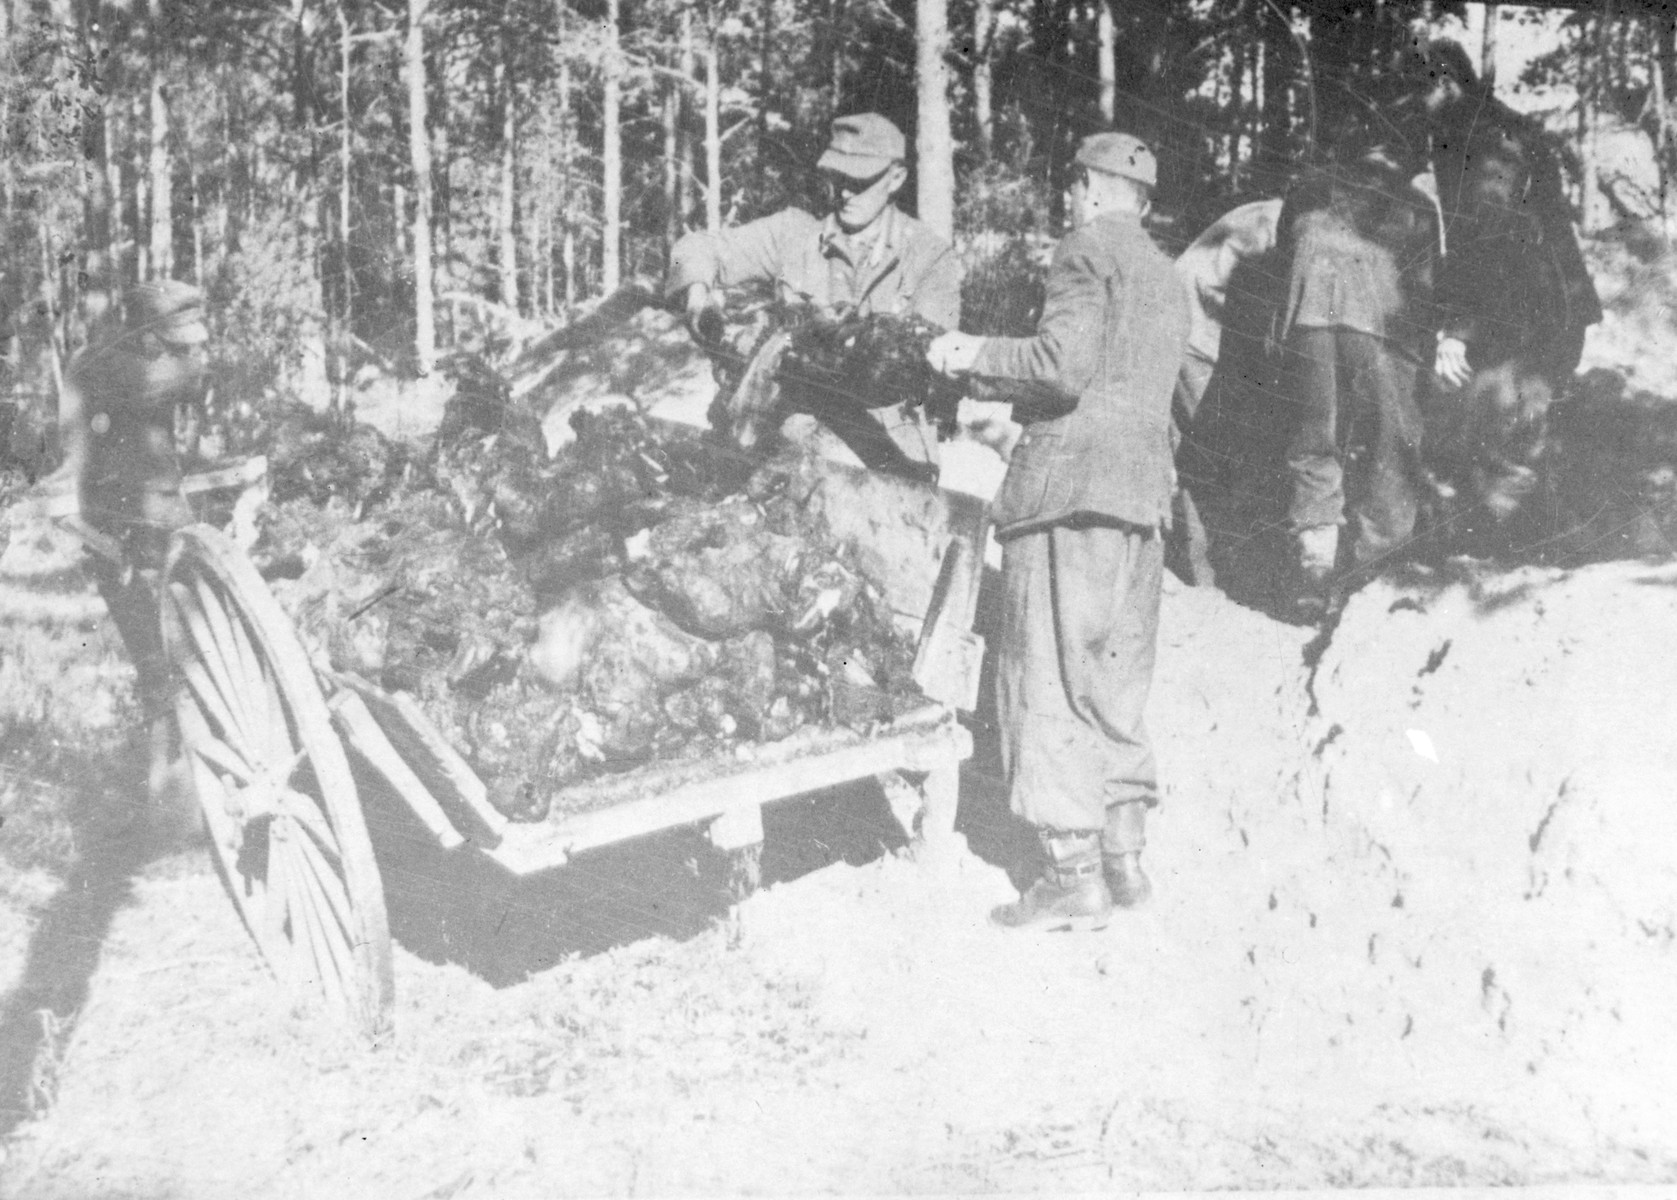 [Former prison guards] exhume and rebury charred corpses in the Klooga concentration camp following its liberation by the Soviet Union.